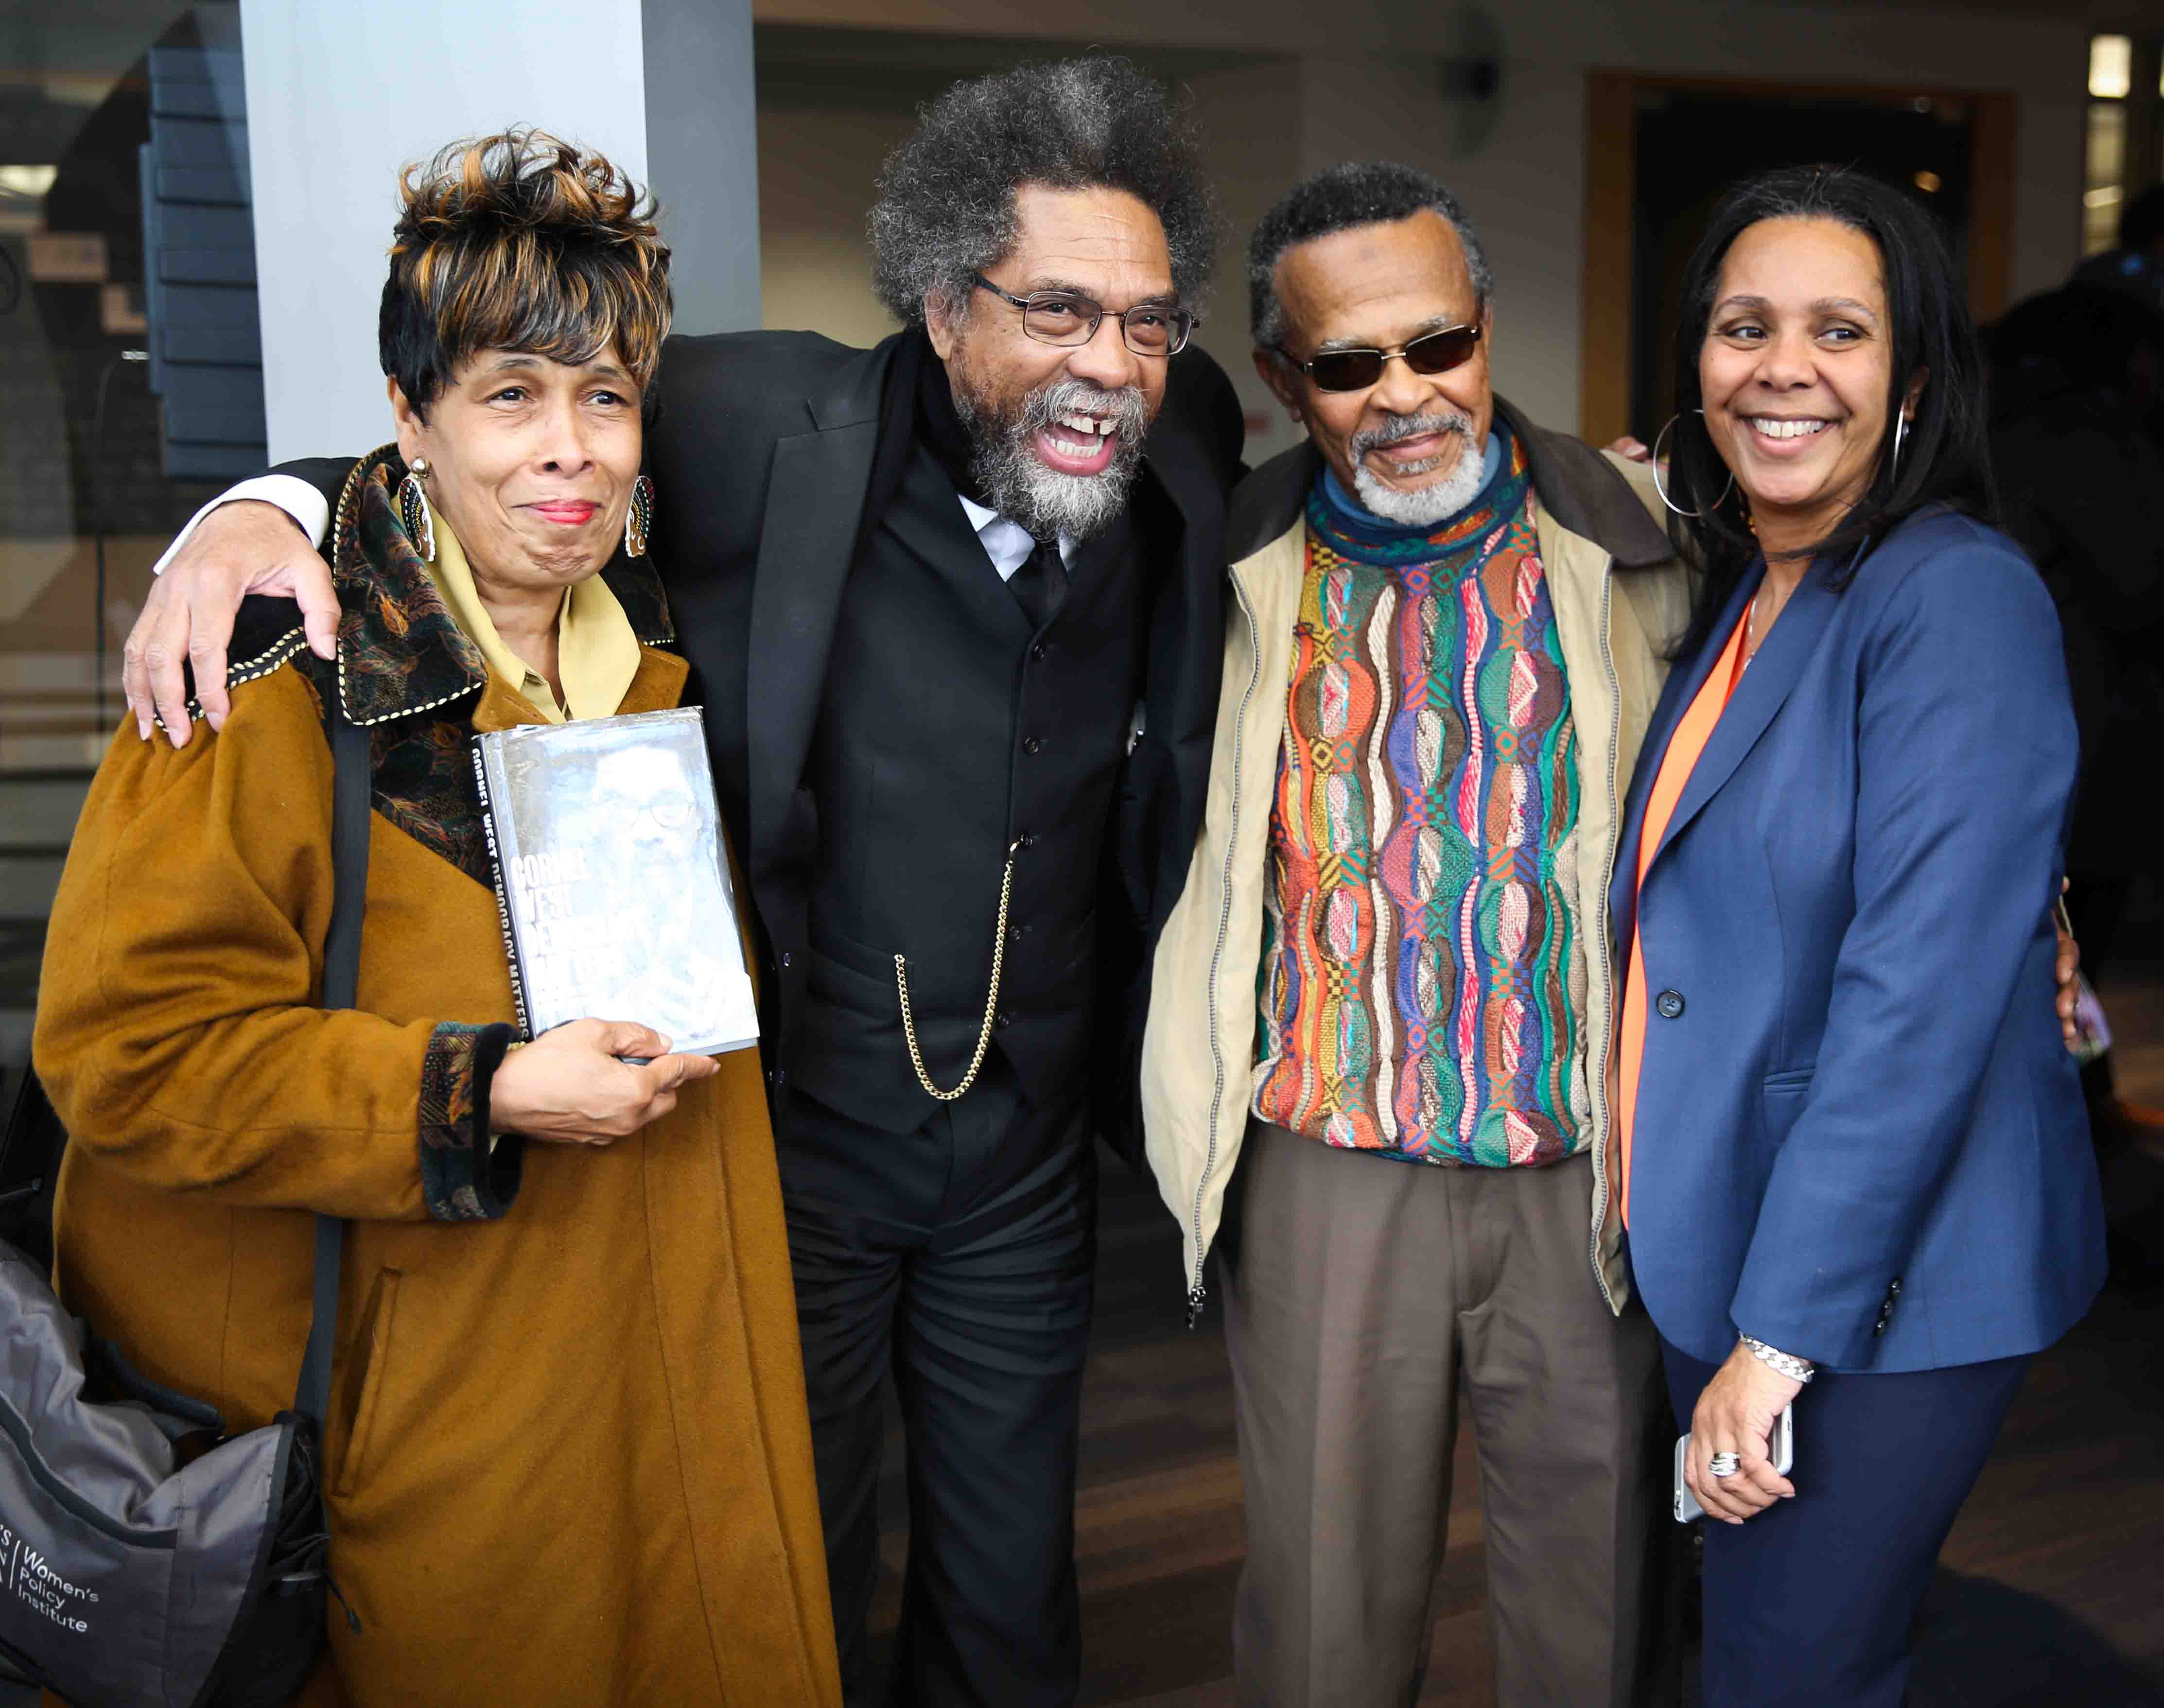 Dr Cornel West and HRC Director Sheryl Davis share a laugh with audience members at the April 27 discussion